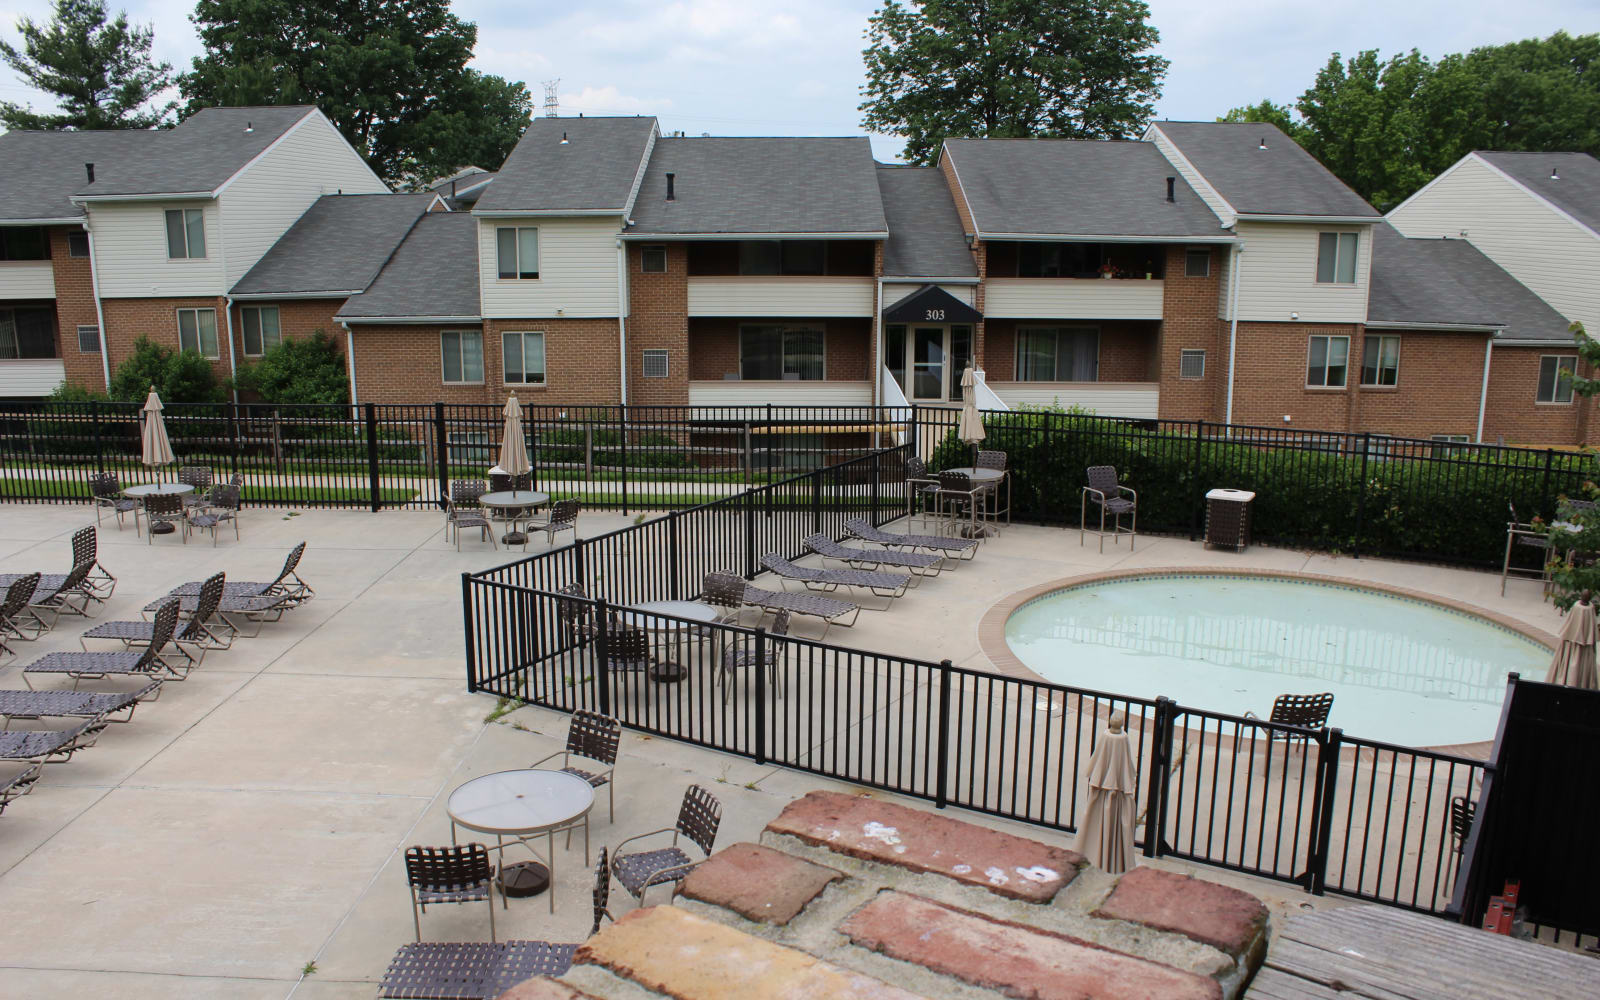 Hot tub for residents at Hunt Club Apartments in Cockeysville, Maryland